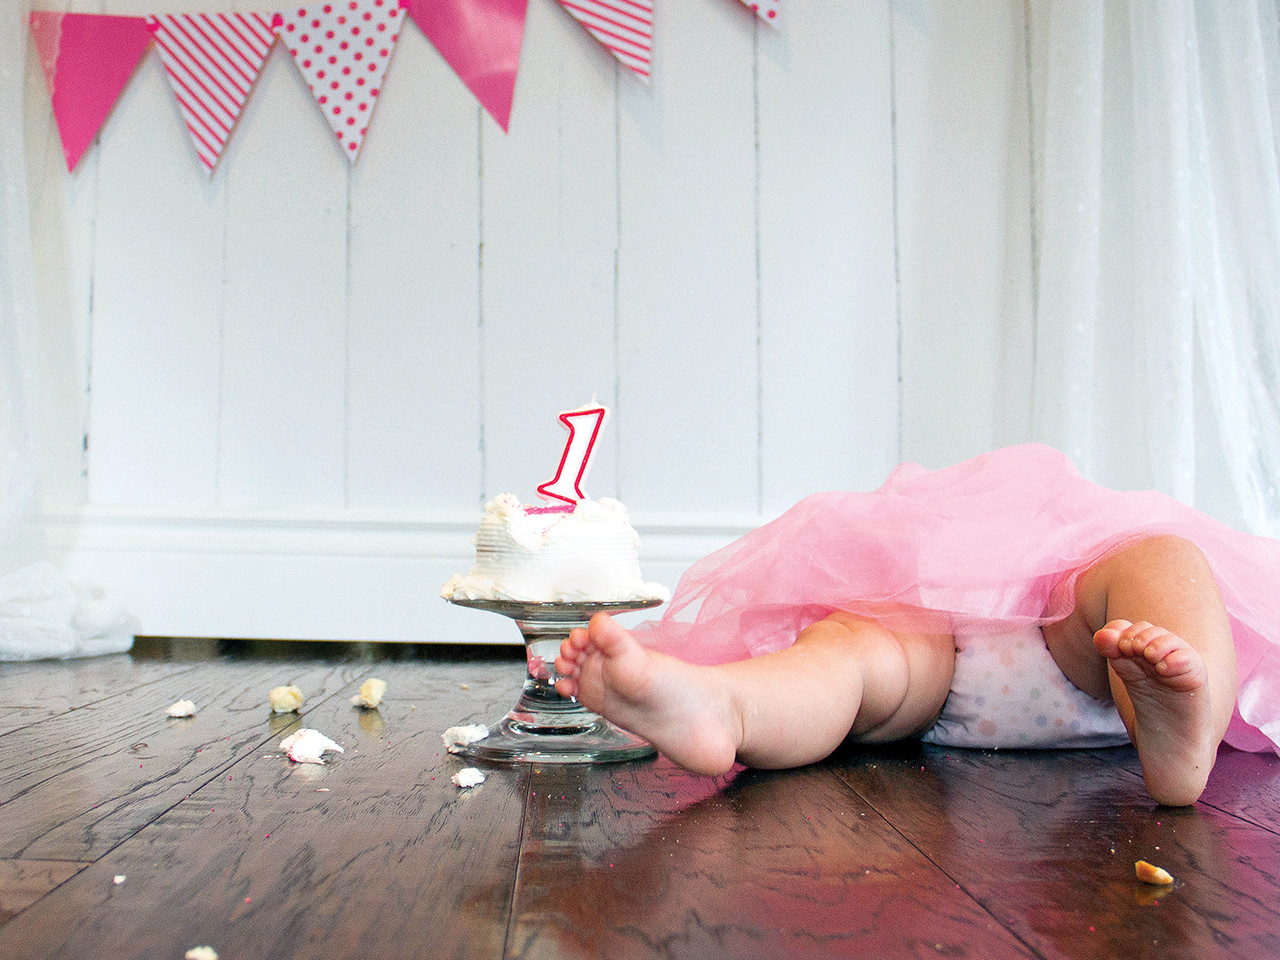 Best ideas about Baby First Birthday Gift Ideas For Her . Save or Pin Planning baby's first birthday party 7 tips to prevent Now.